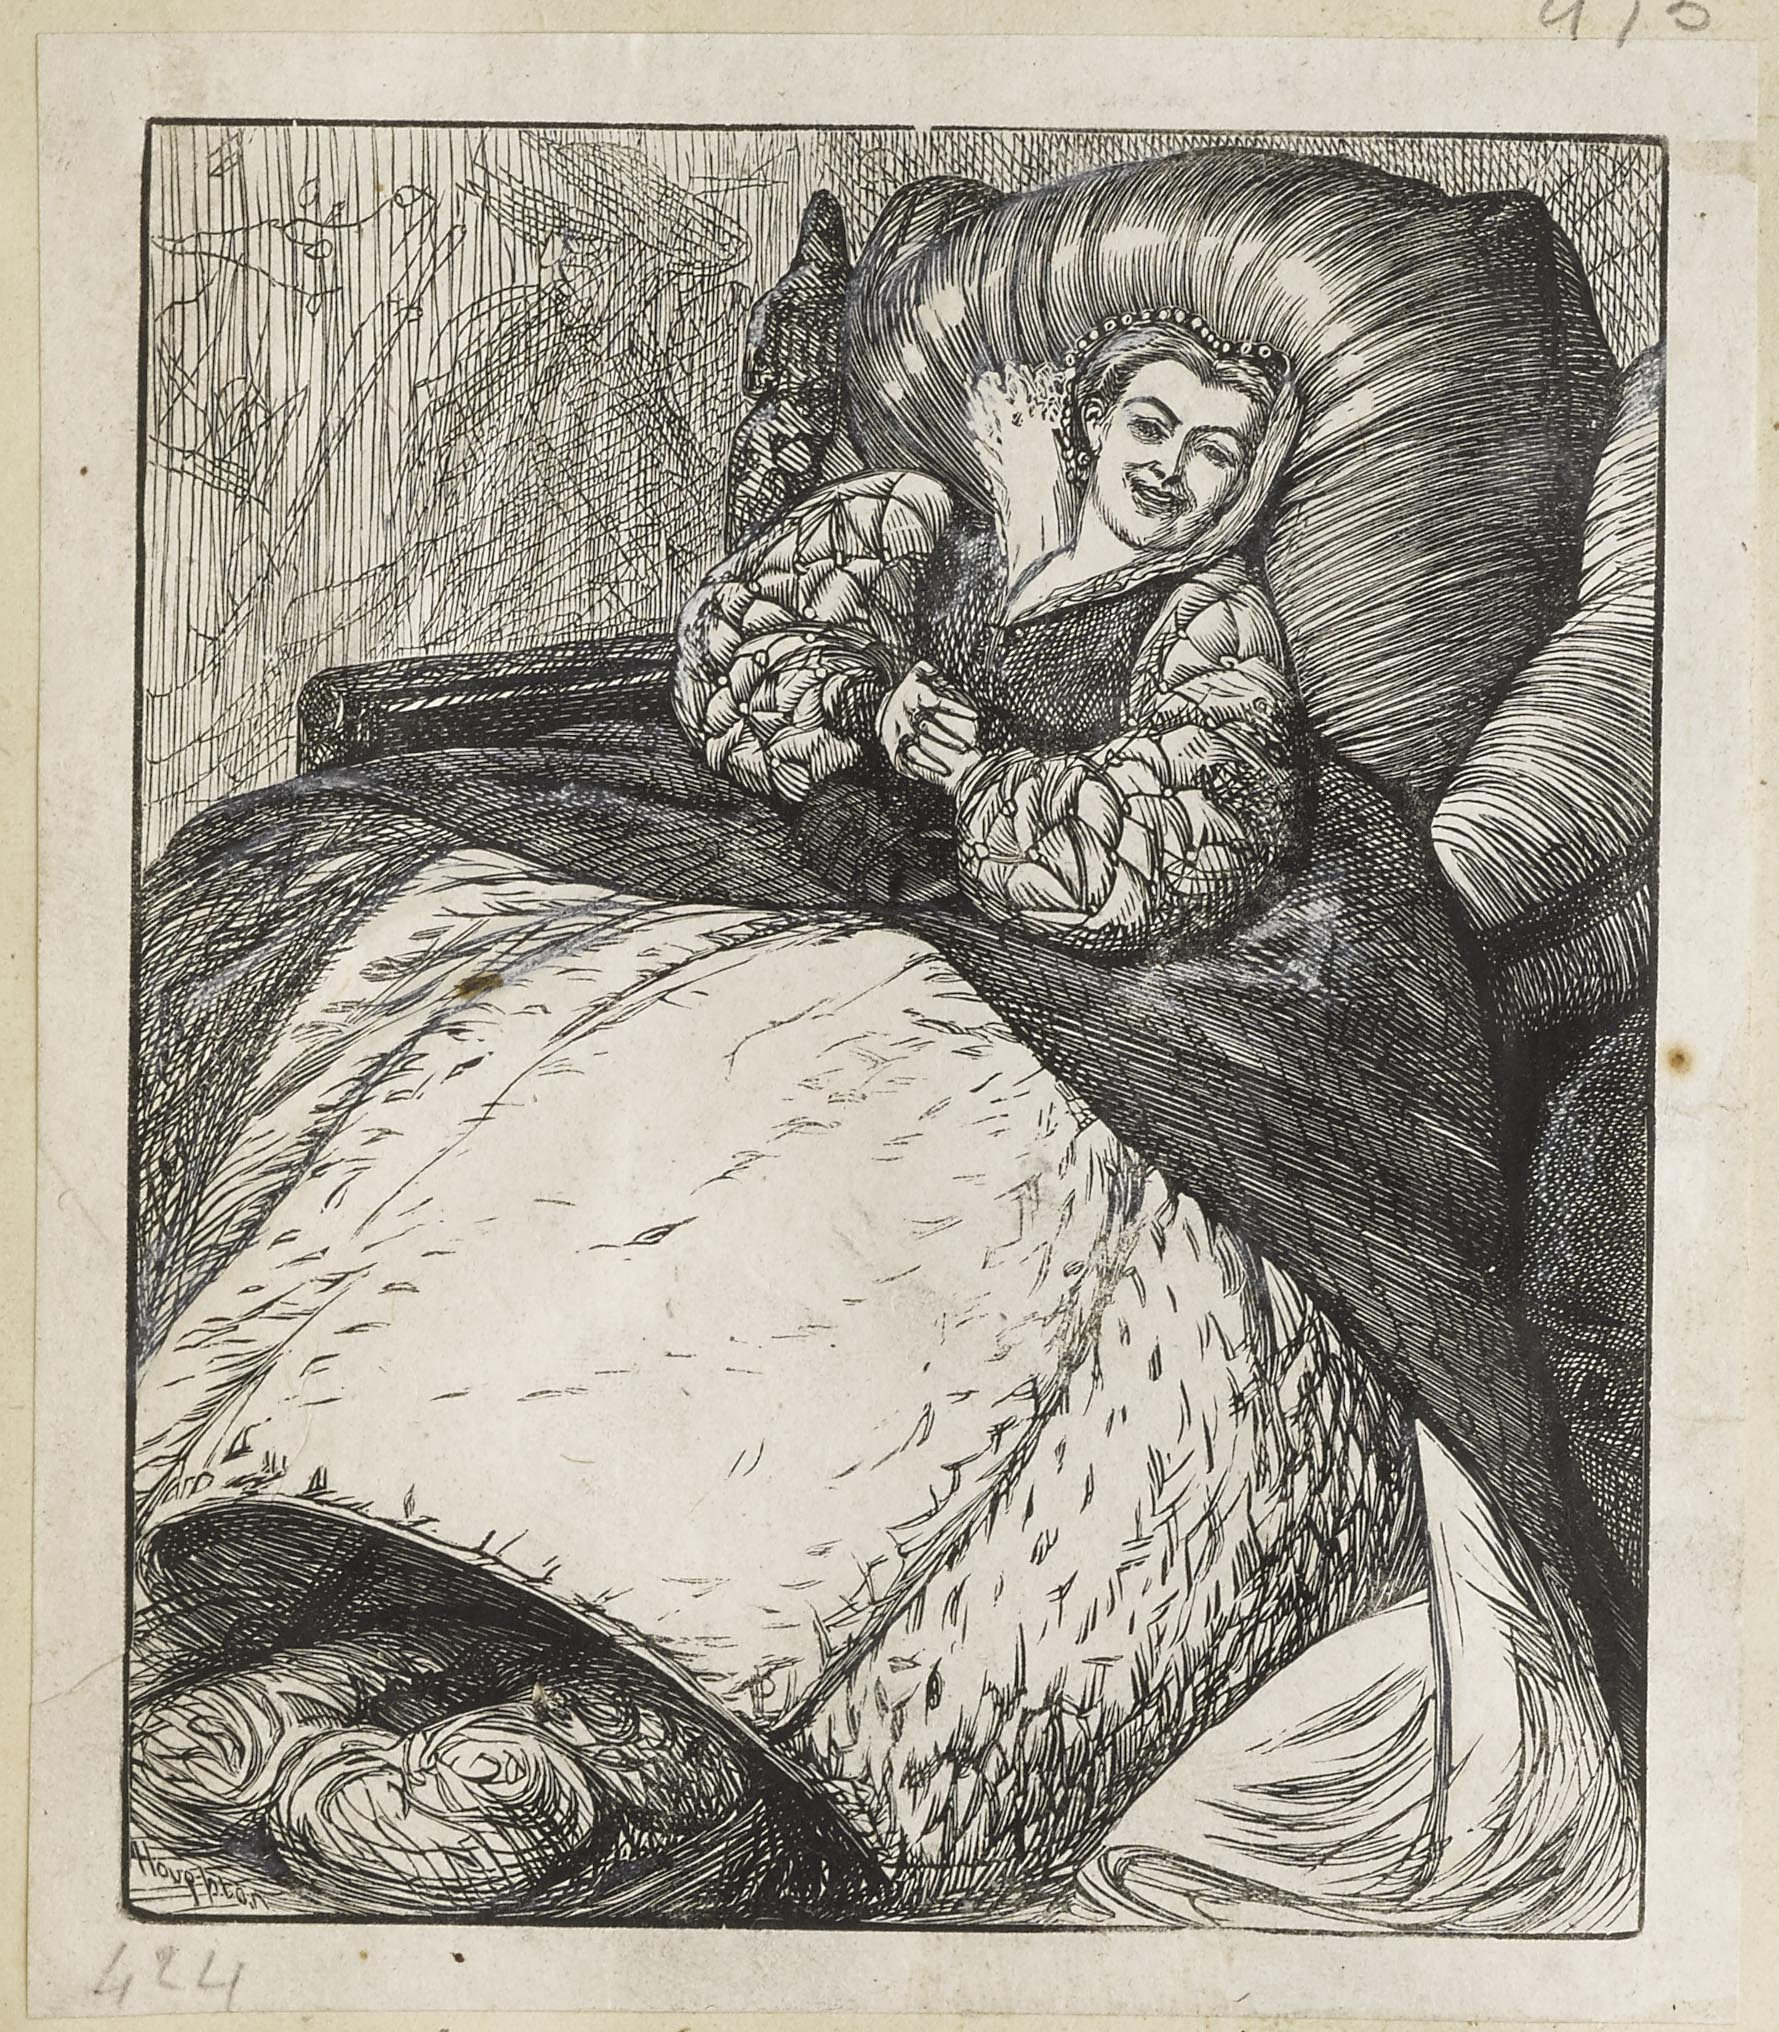 Dalziel After Arthur Boyd Houghton The Duchess Was Convulsed With